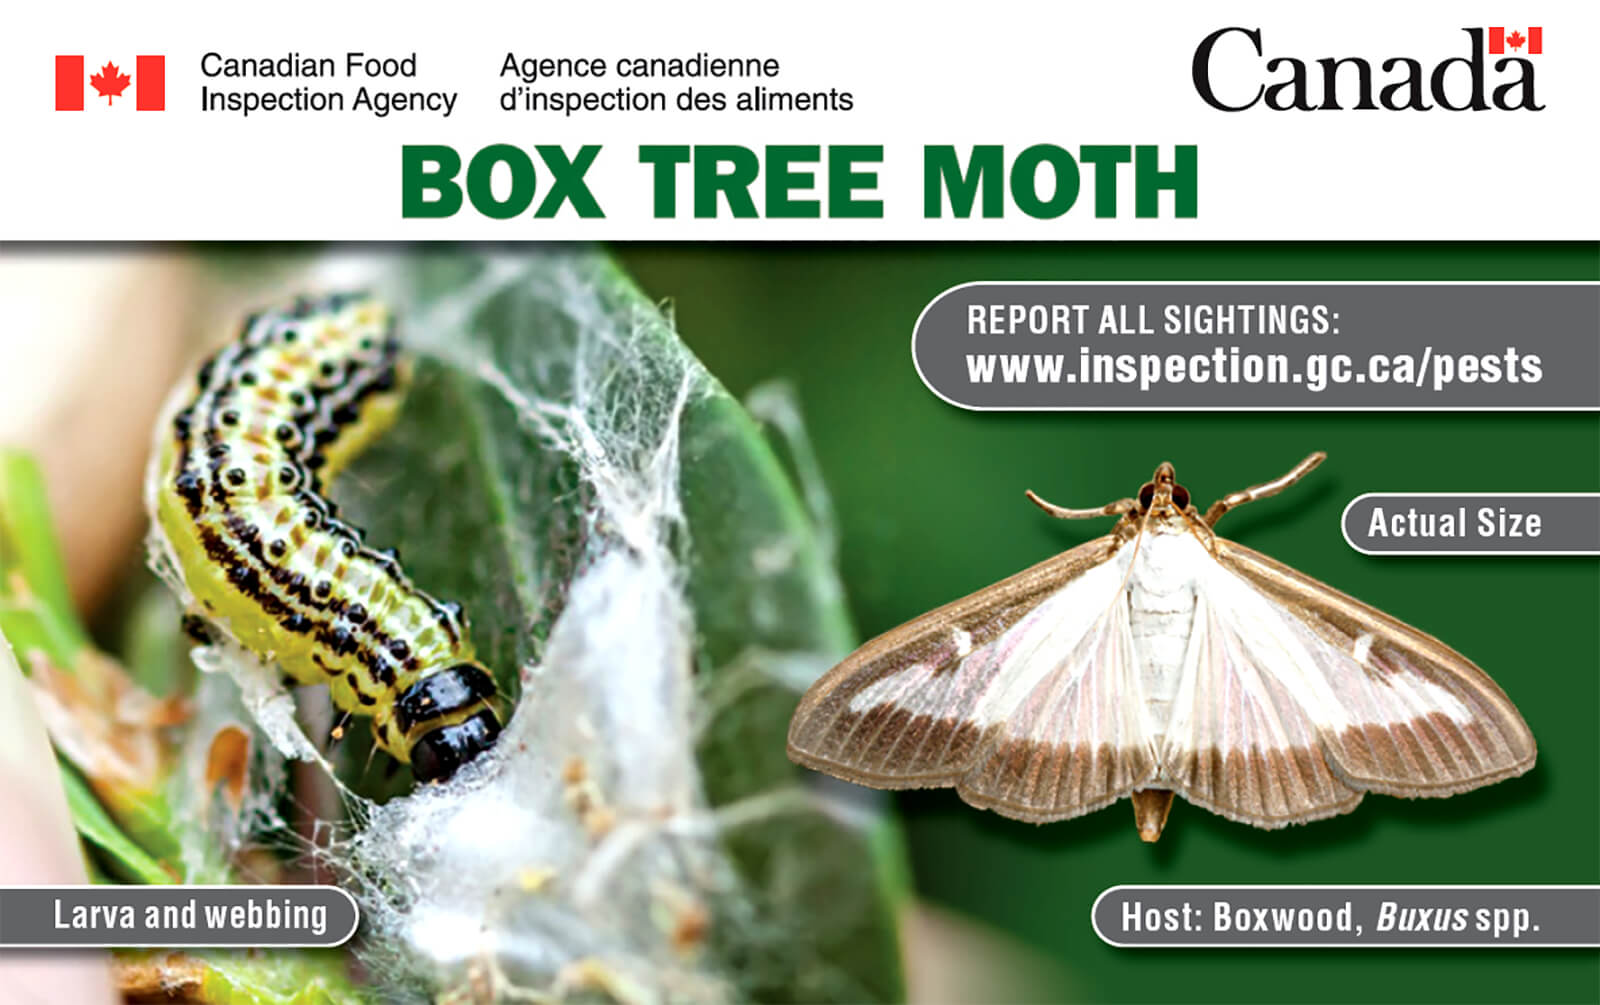 box tree moth larva, webbing, and acutal size moth